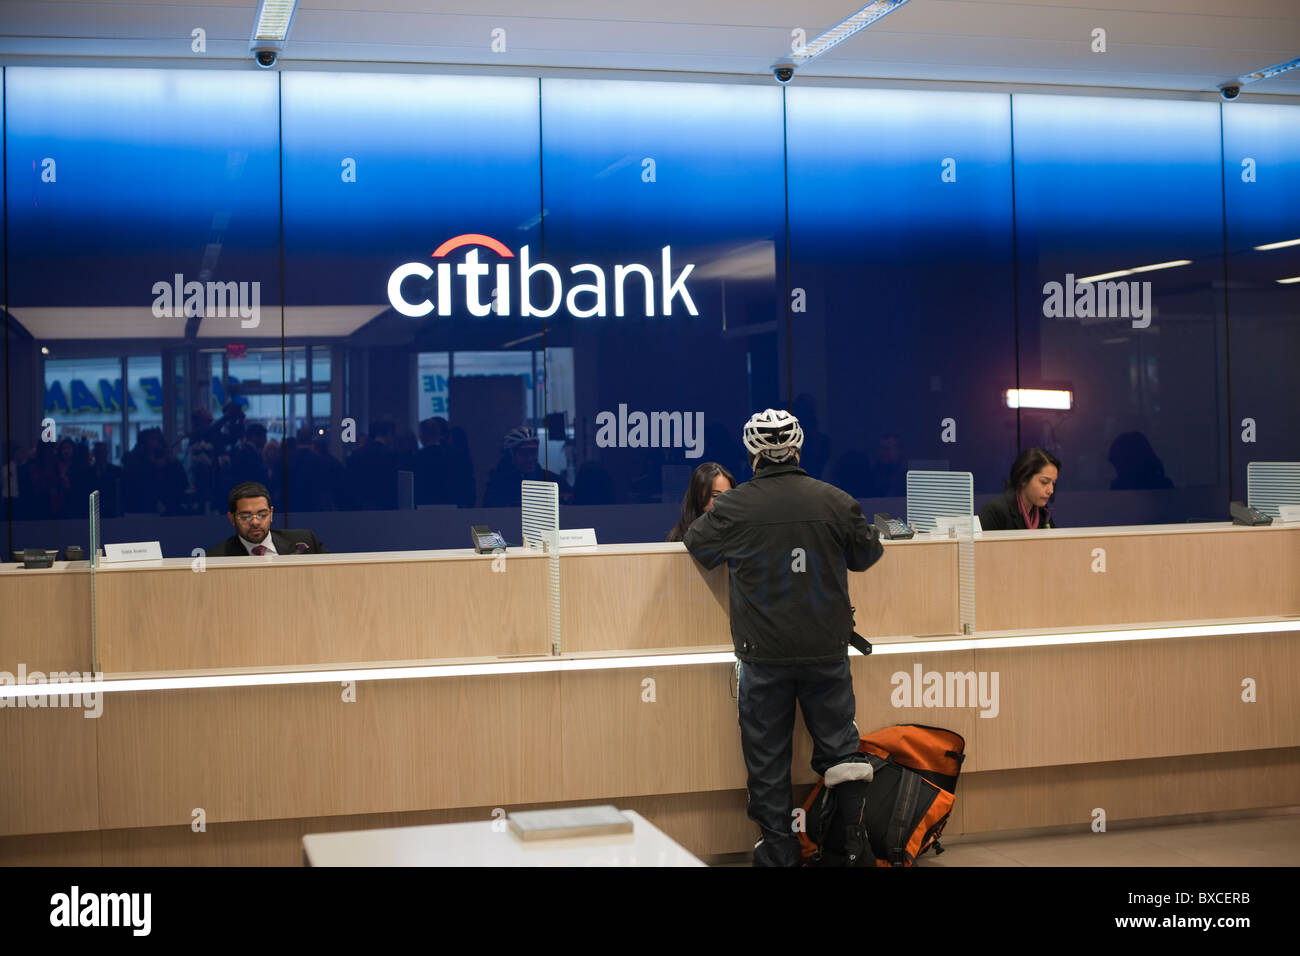 teller stations in the citibank new flagship high tech branch in the union square neighborhood of